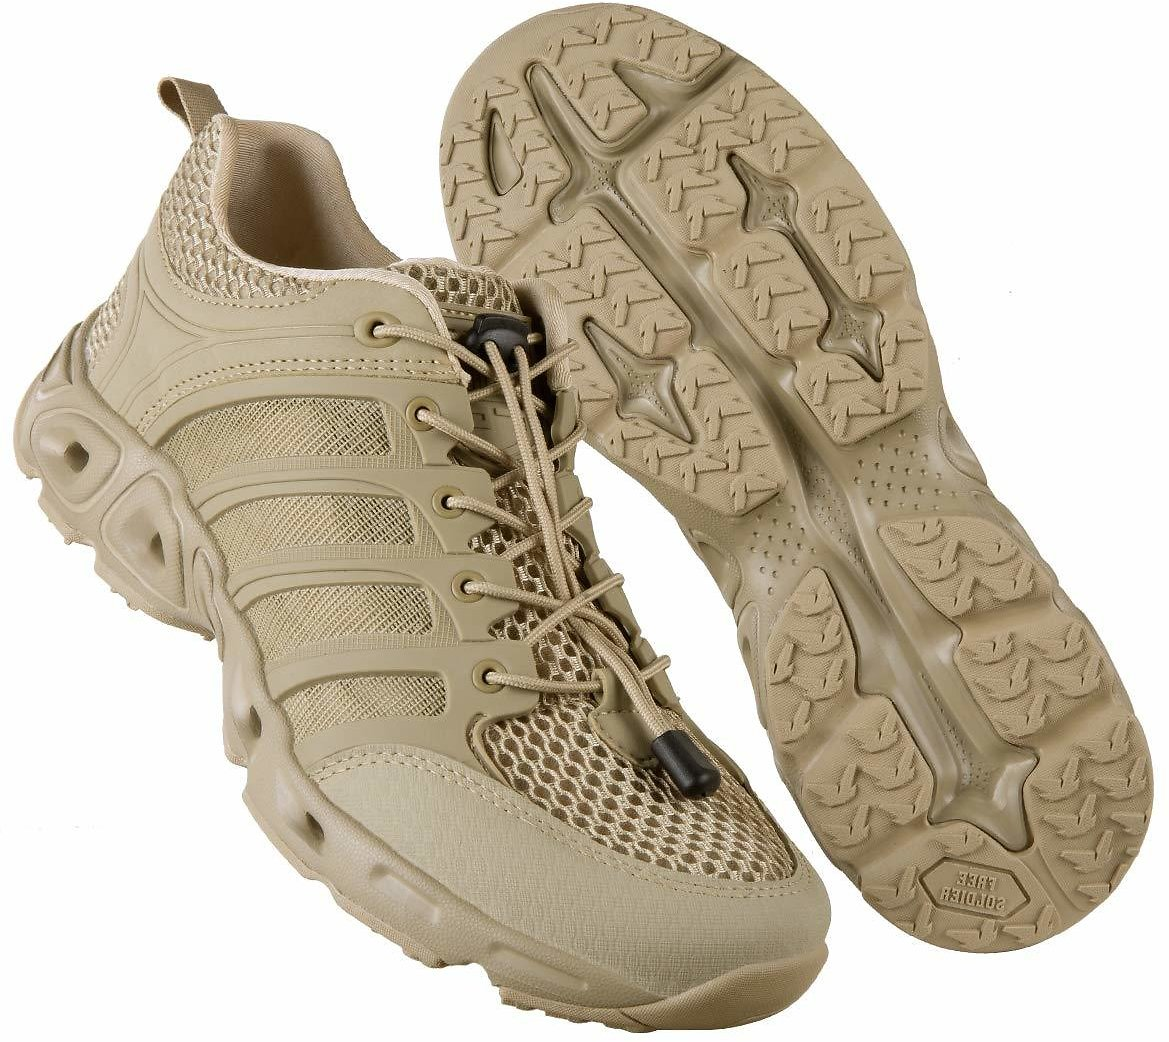 Up to 40% Off FREE SOLDIER Men's Quick Drying Lightweight Sport Water Shoes + Free Shipping